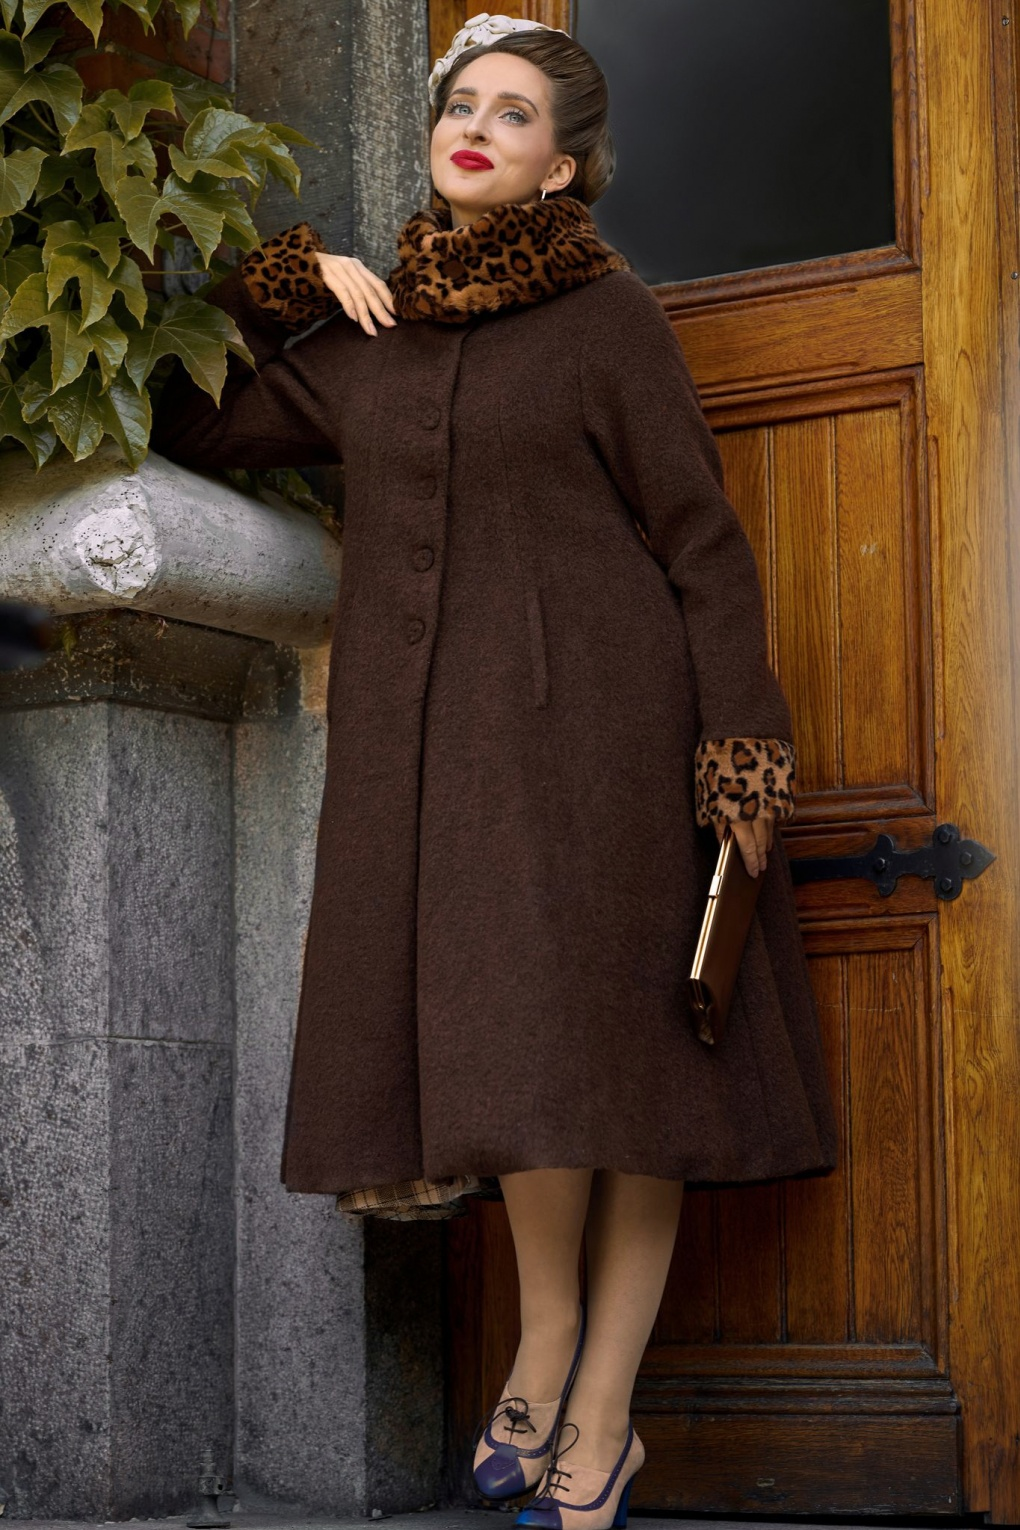 Vintage Coats & Jackets | Retro Coats and Jackets 40s Pomona Dora Wool Winter Coat in Brown and Leopard £158.76 AT vintagedancer.com